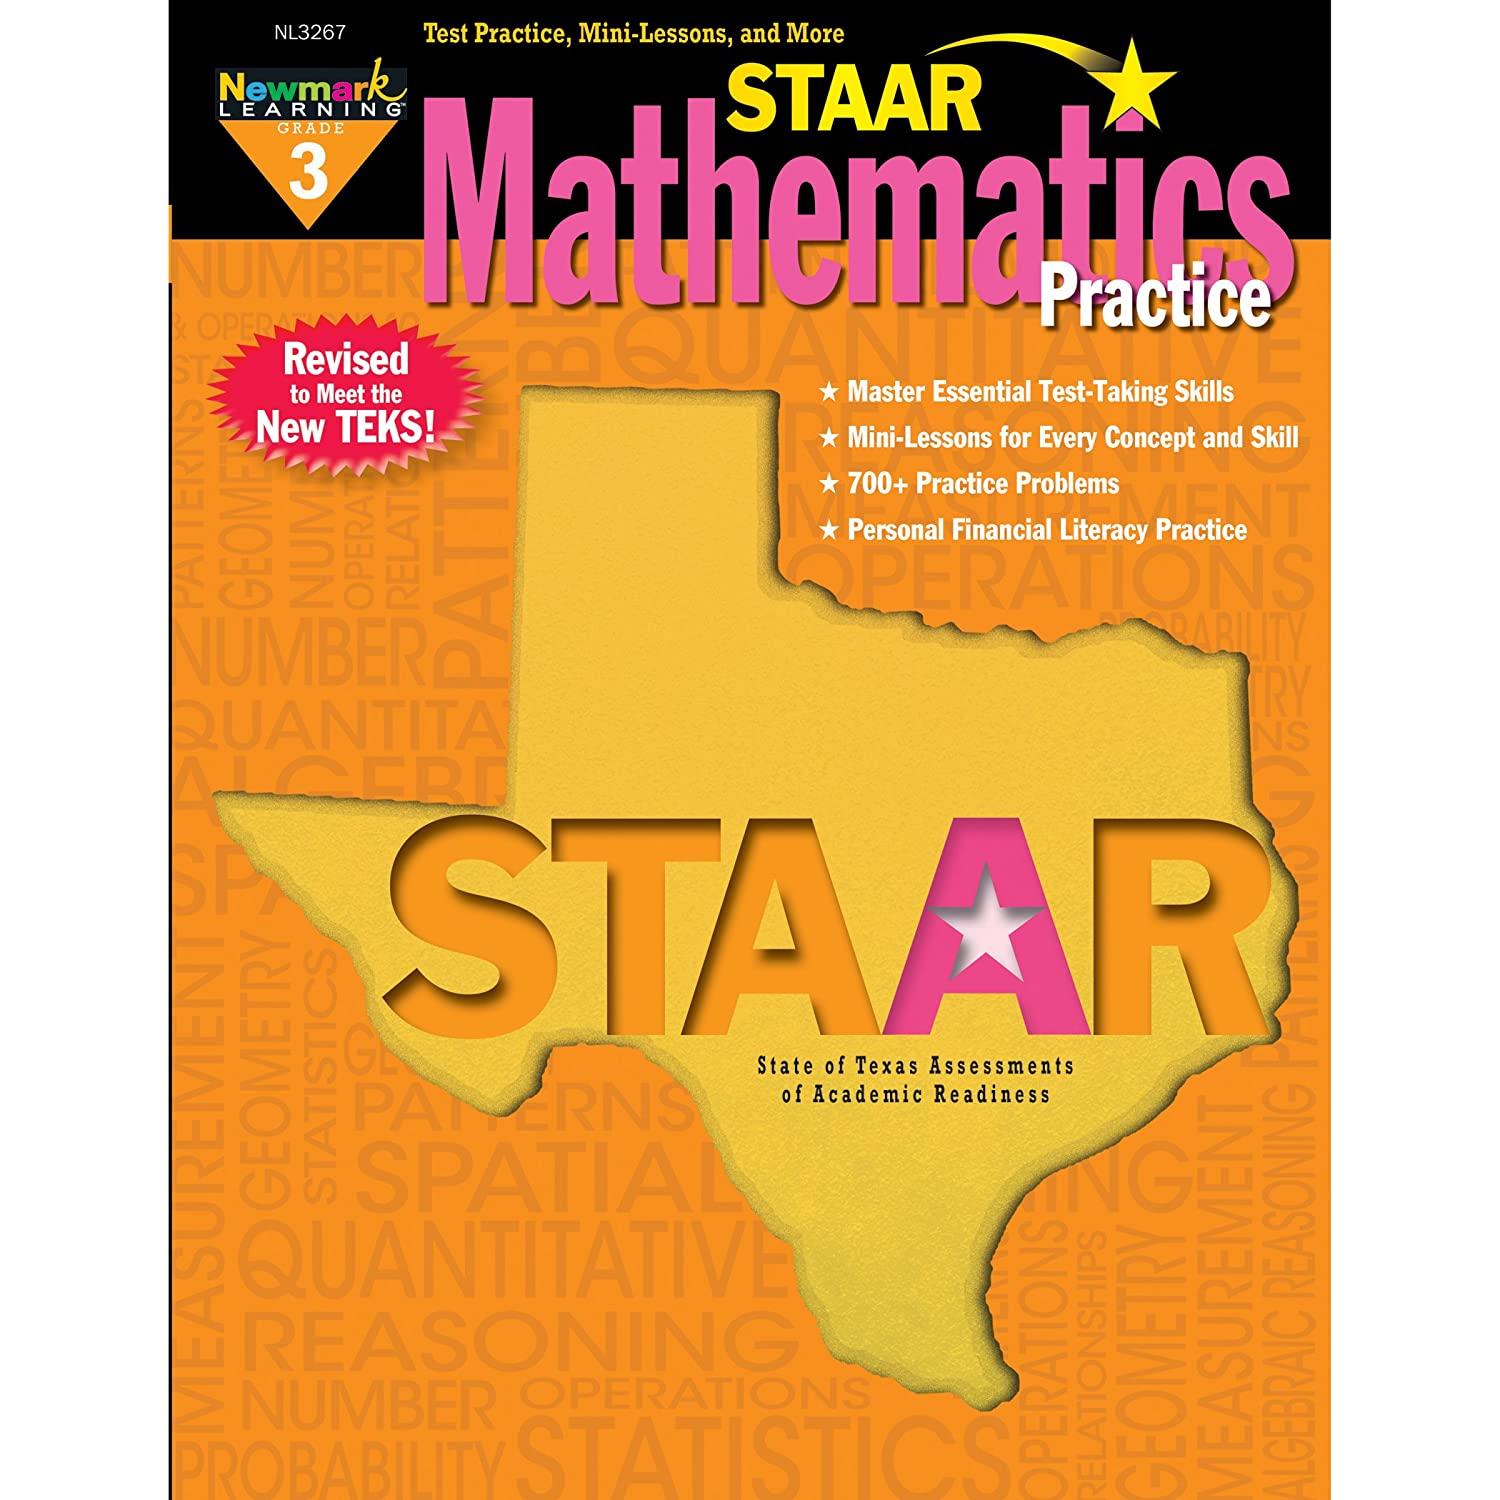 Newmark Learning Grade 3 Staar Mathematics Practice Aid 3 NL-3267